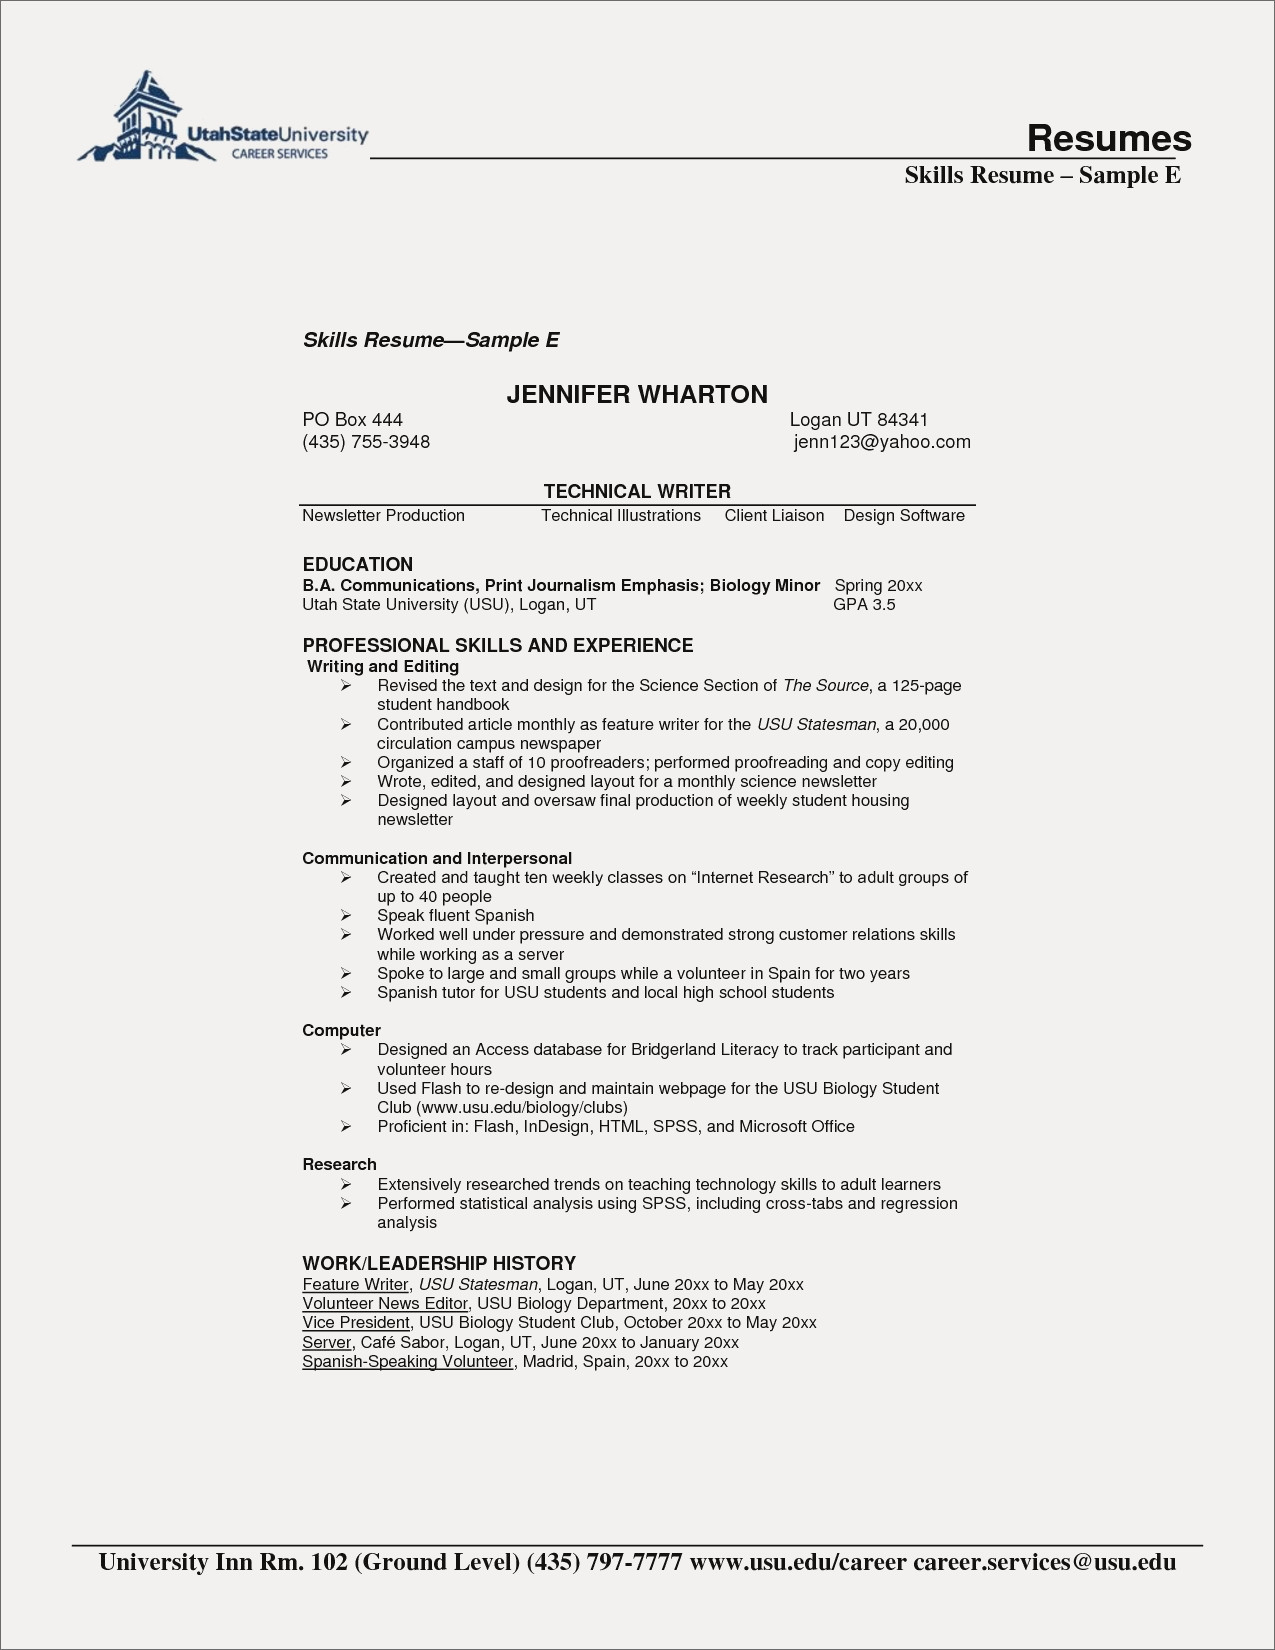 wharton resume template example-Cheap Resumes Fresh Puter Skills Example Unique Examples Resumes Ecologist Resume 0d 12-q